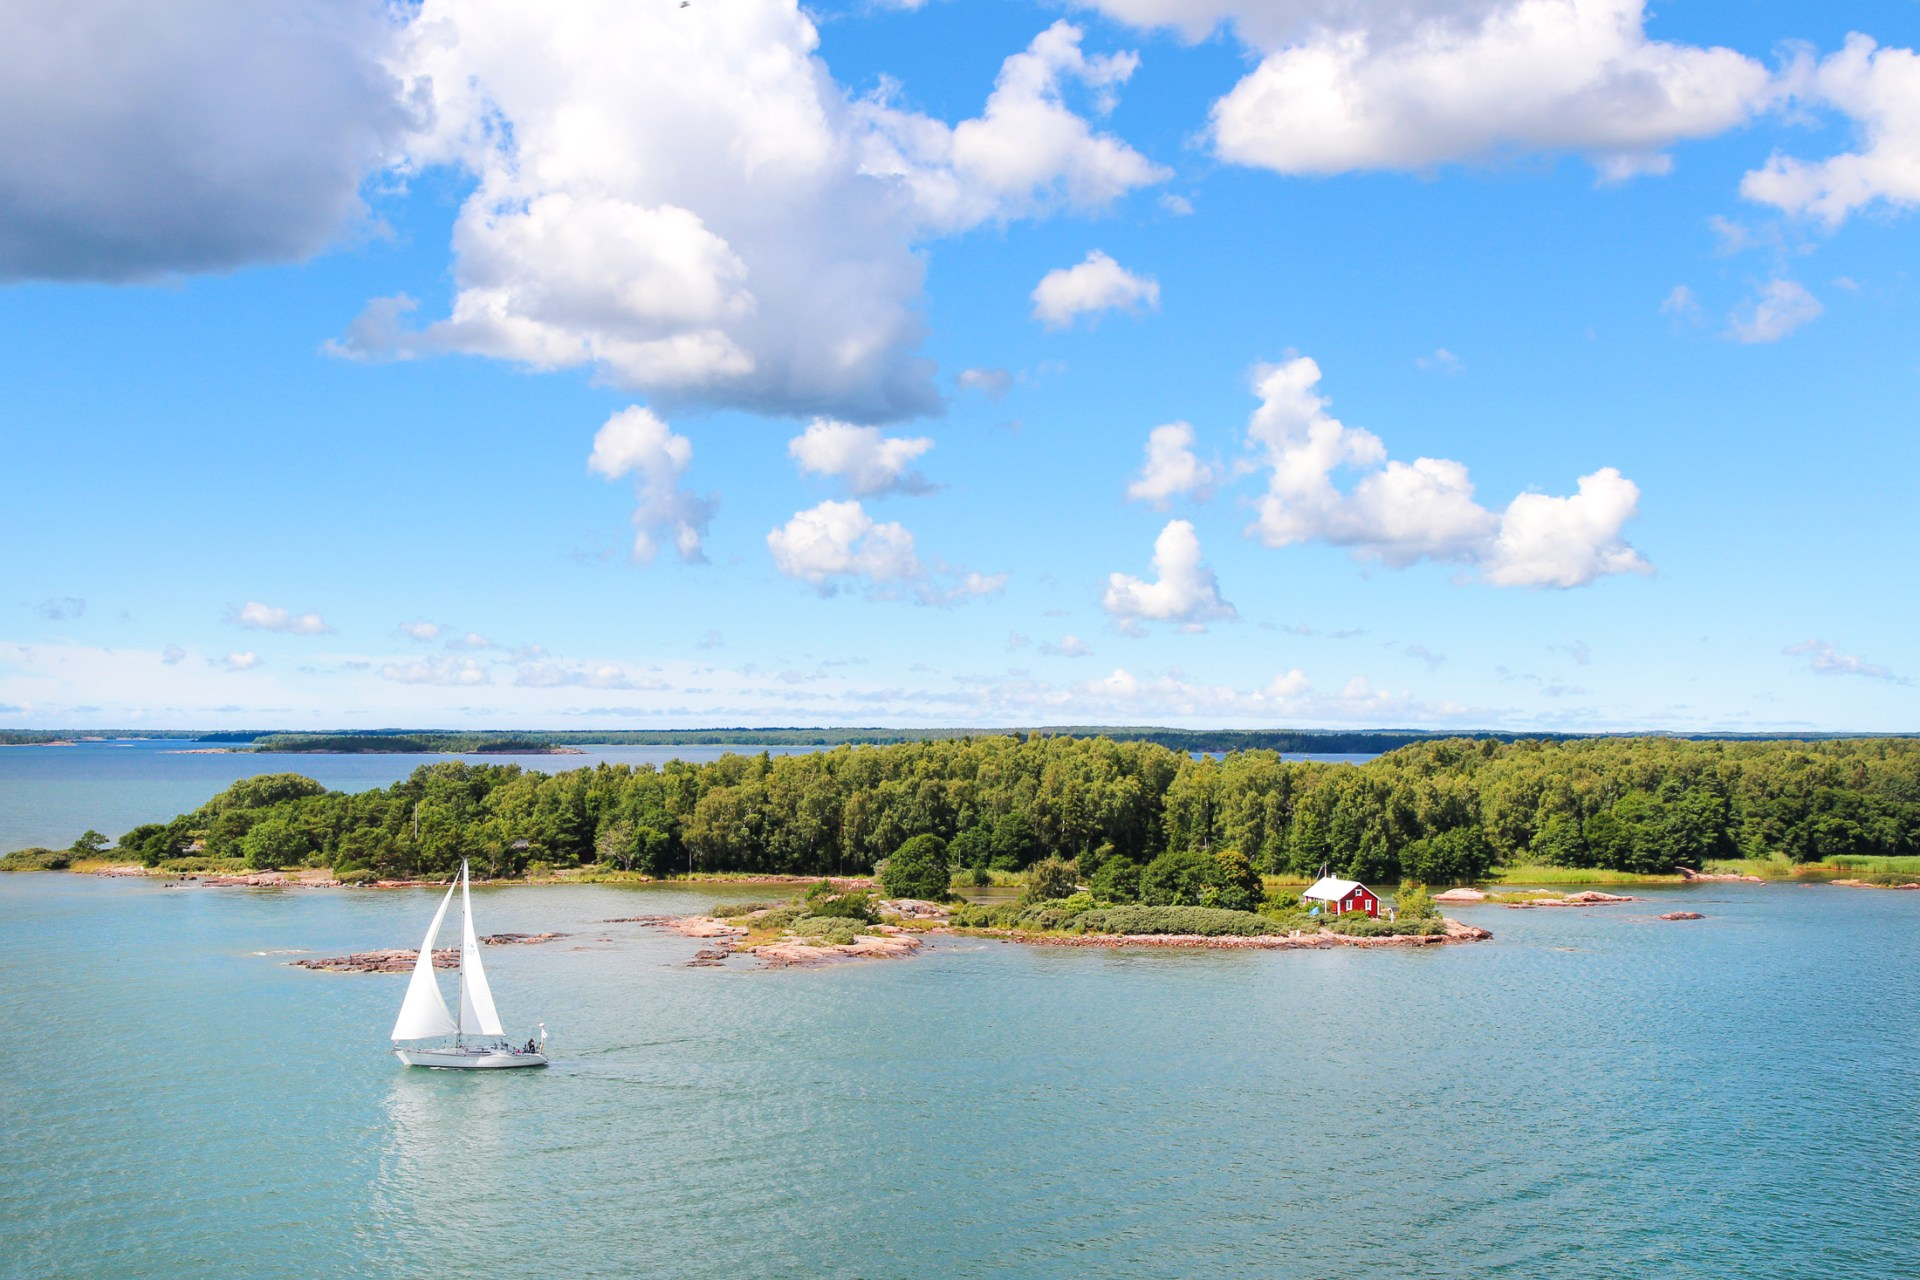 6 cool facts that you probably didn't know about the Aland Islands